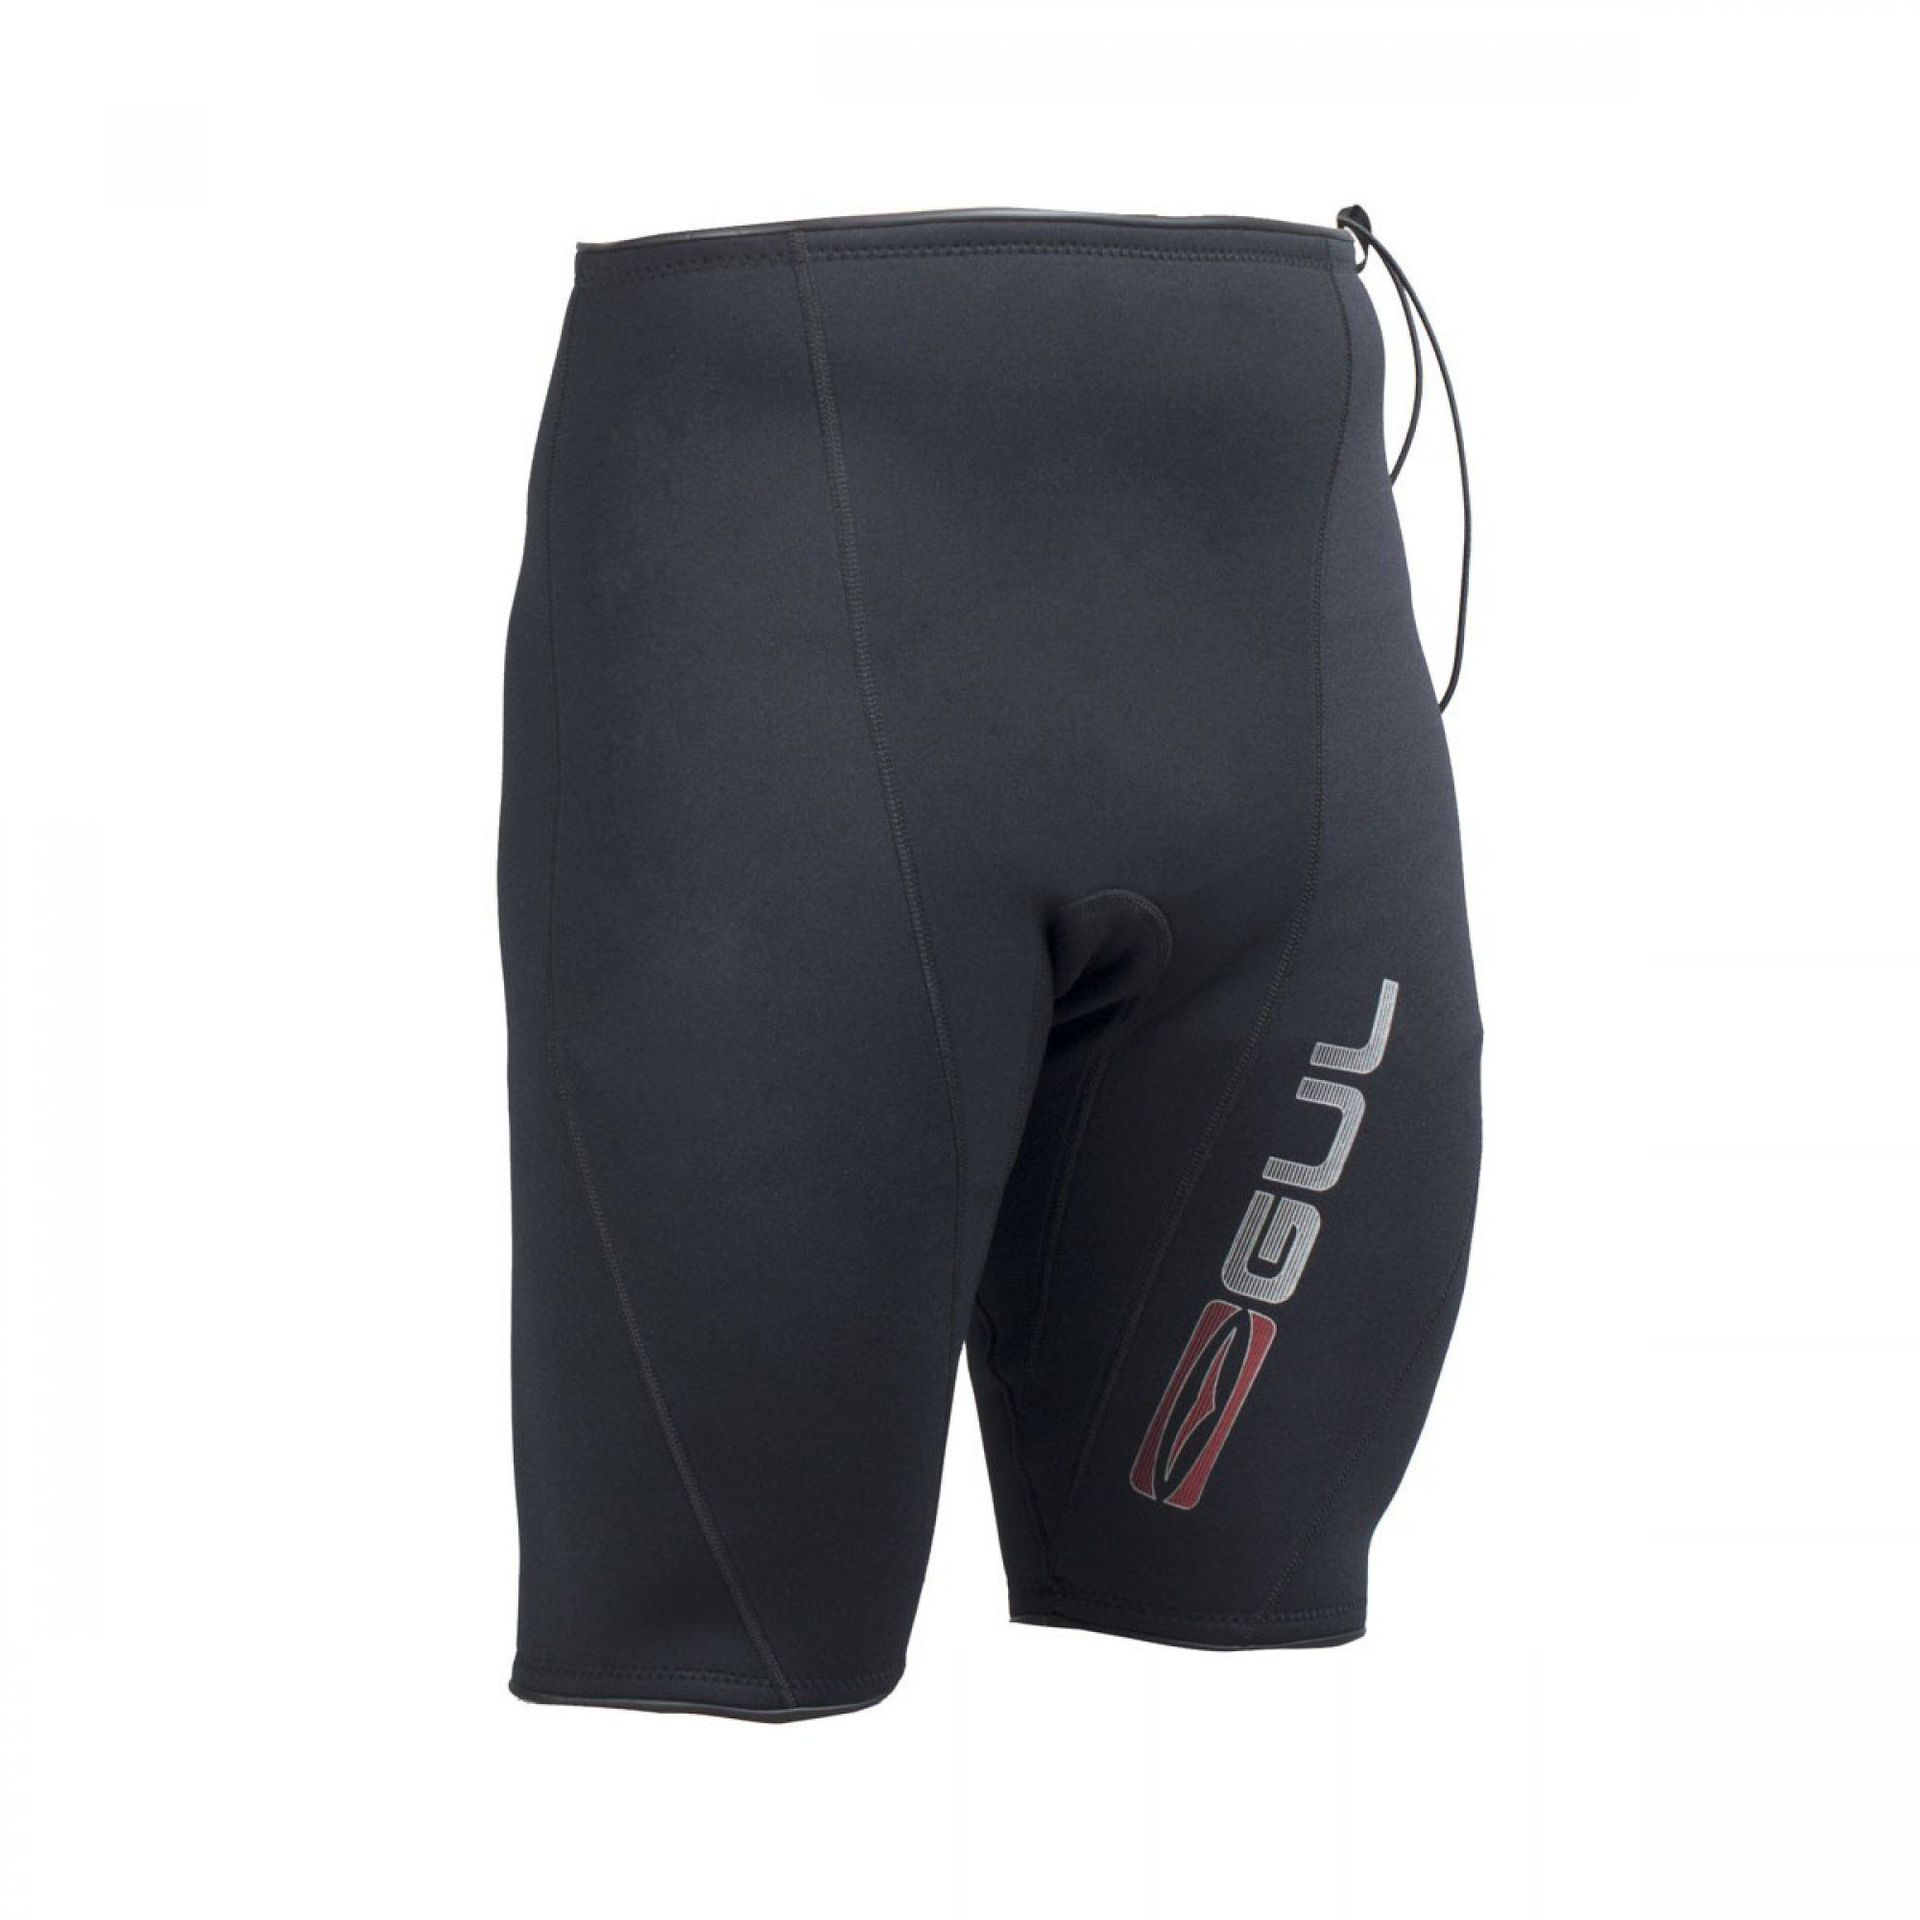 SZORTY NEOPRENOWE GUL RESPONSE 2MM SHORTS